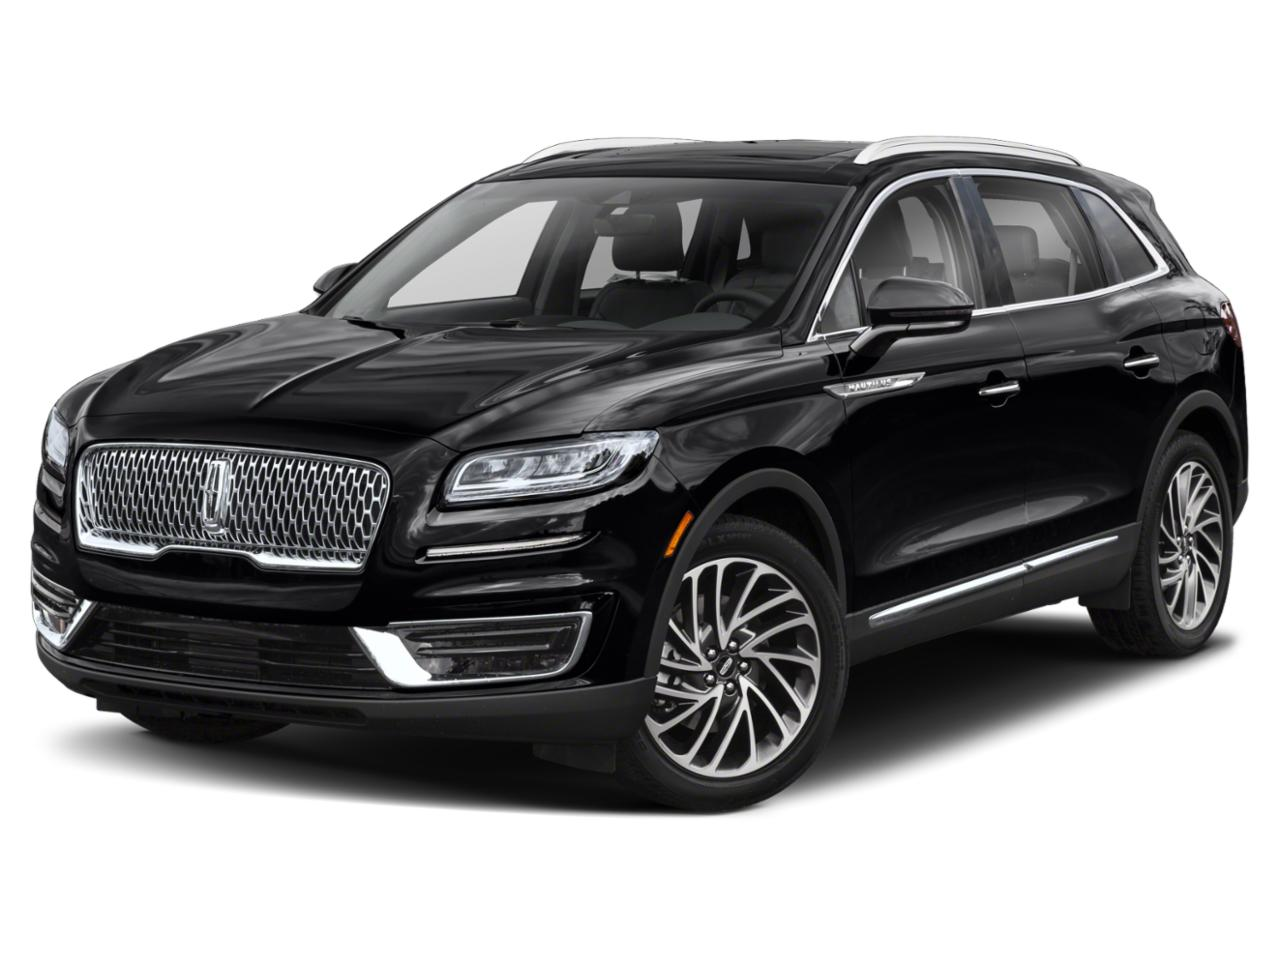 2020 LINCOLN Nautilus Vehicle Photo in Colorado Springs, CO 80905